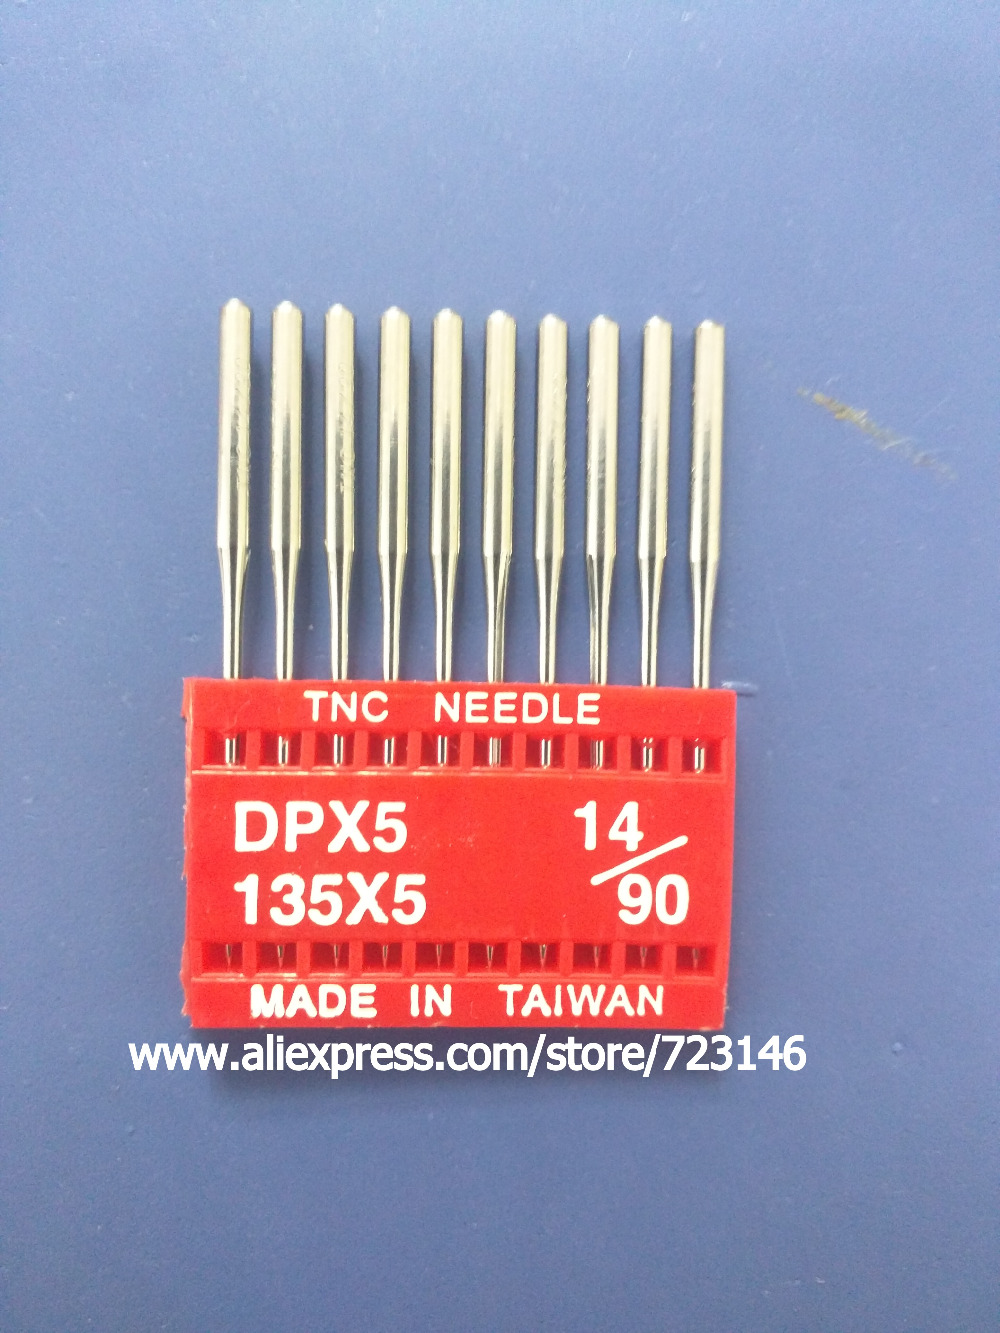 TNC DPX5 DP5 135X5 leather sewing needles for postbed industrial machine of Sunstar singer juki brother pfaff juki durkopp ADLER